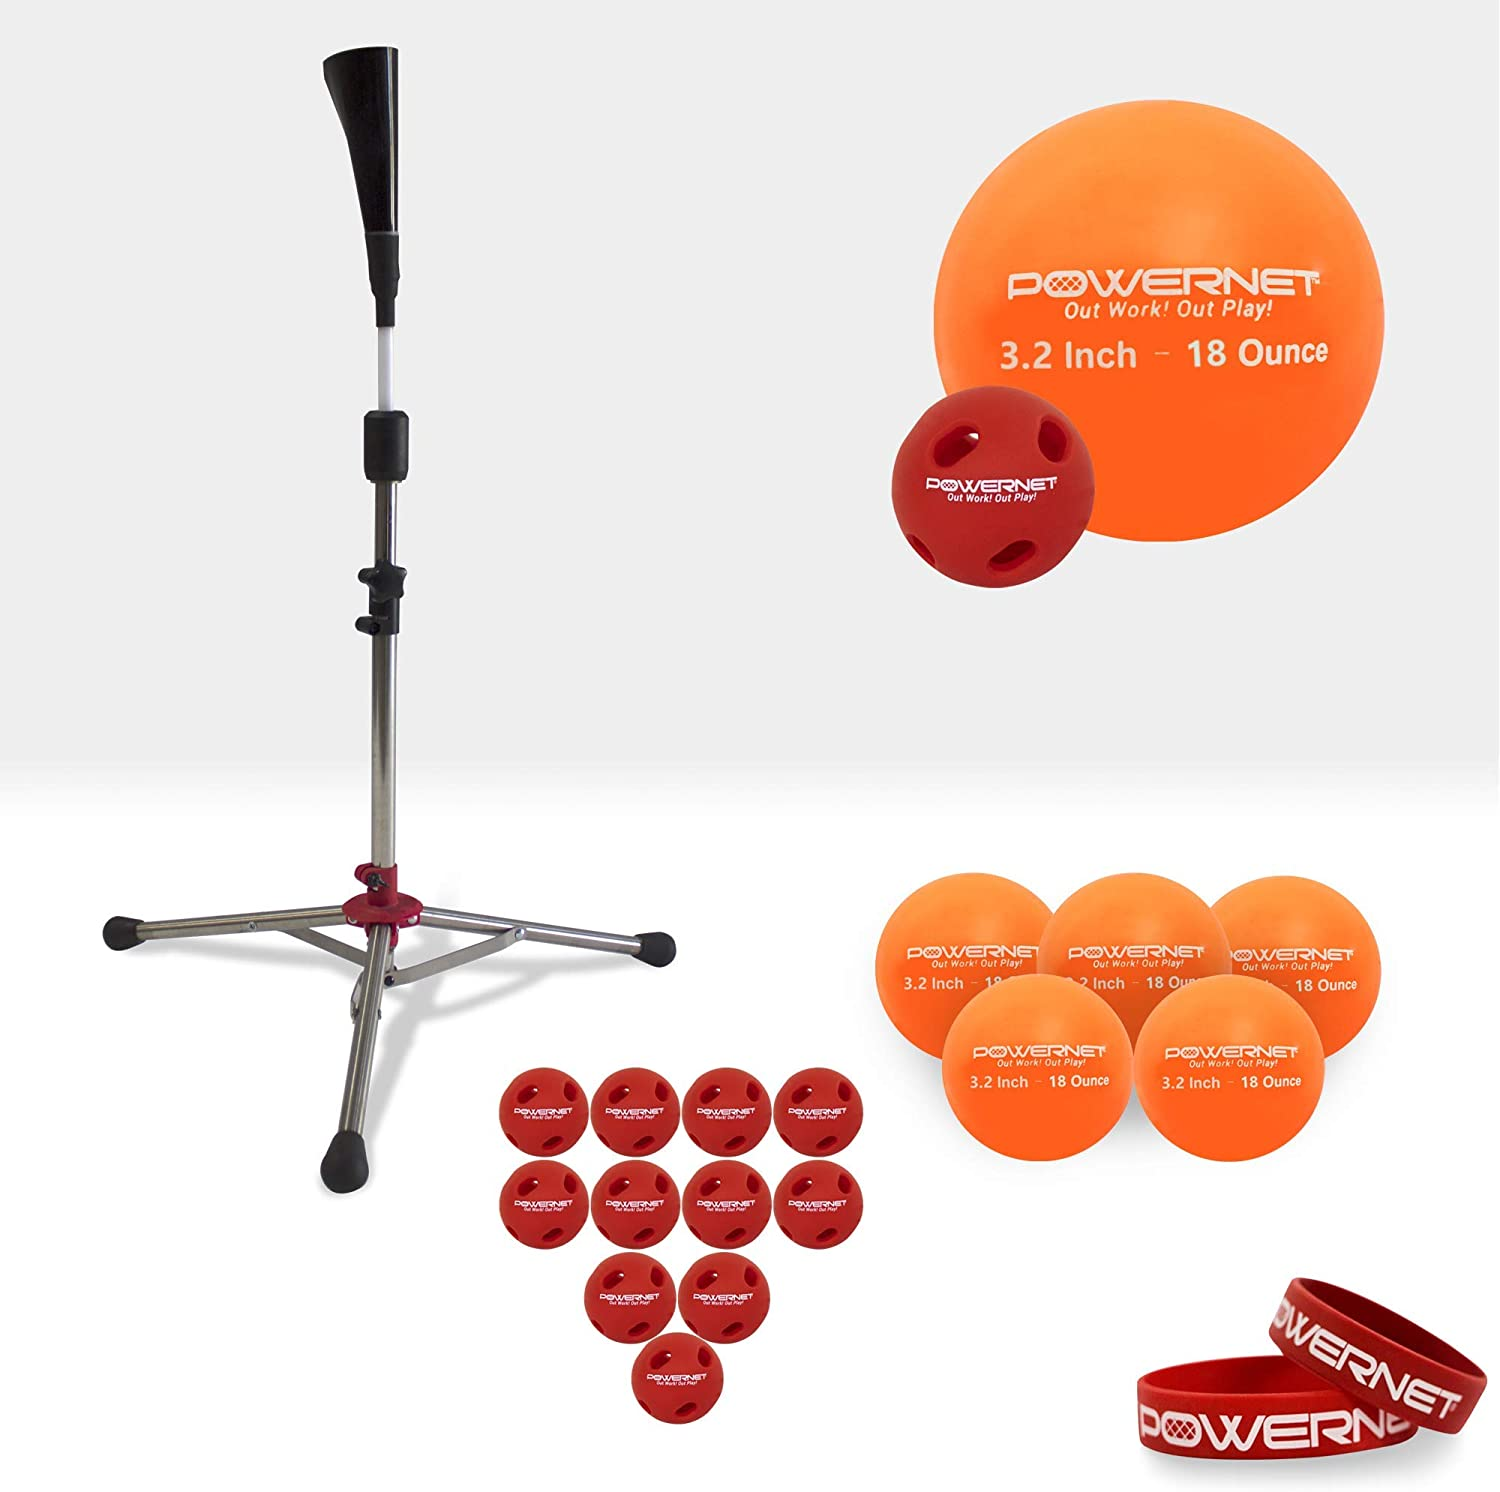 PowerNet Coordination Enhancer Bundle for Baseball Softball | Improve Eye Coordination & Strength | Includes a Heavy Tee, 6 Pack of 3.2